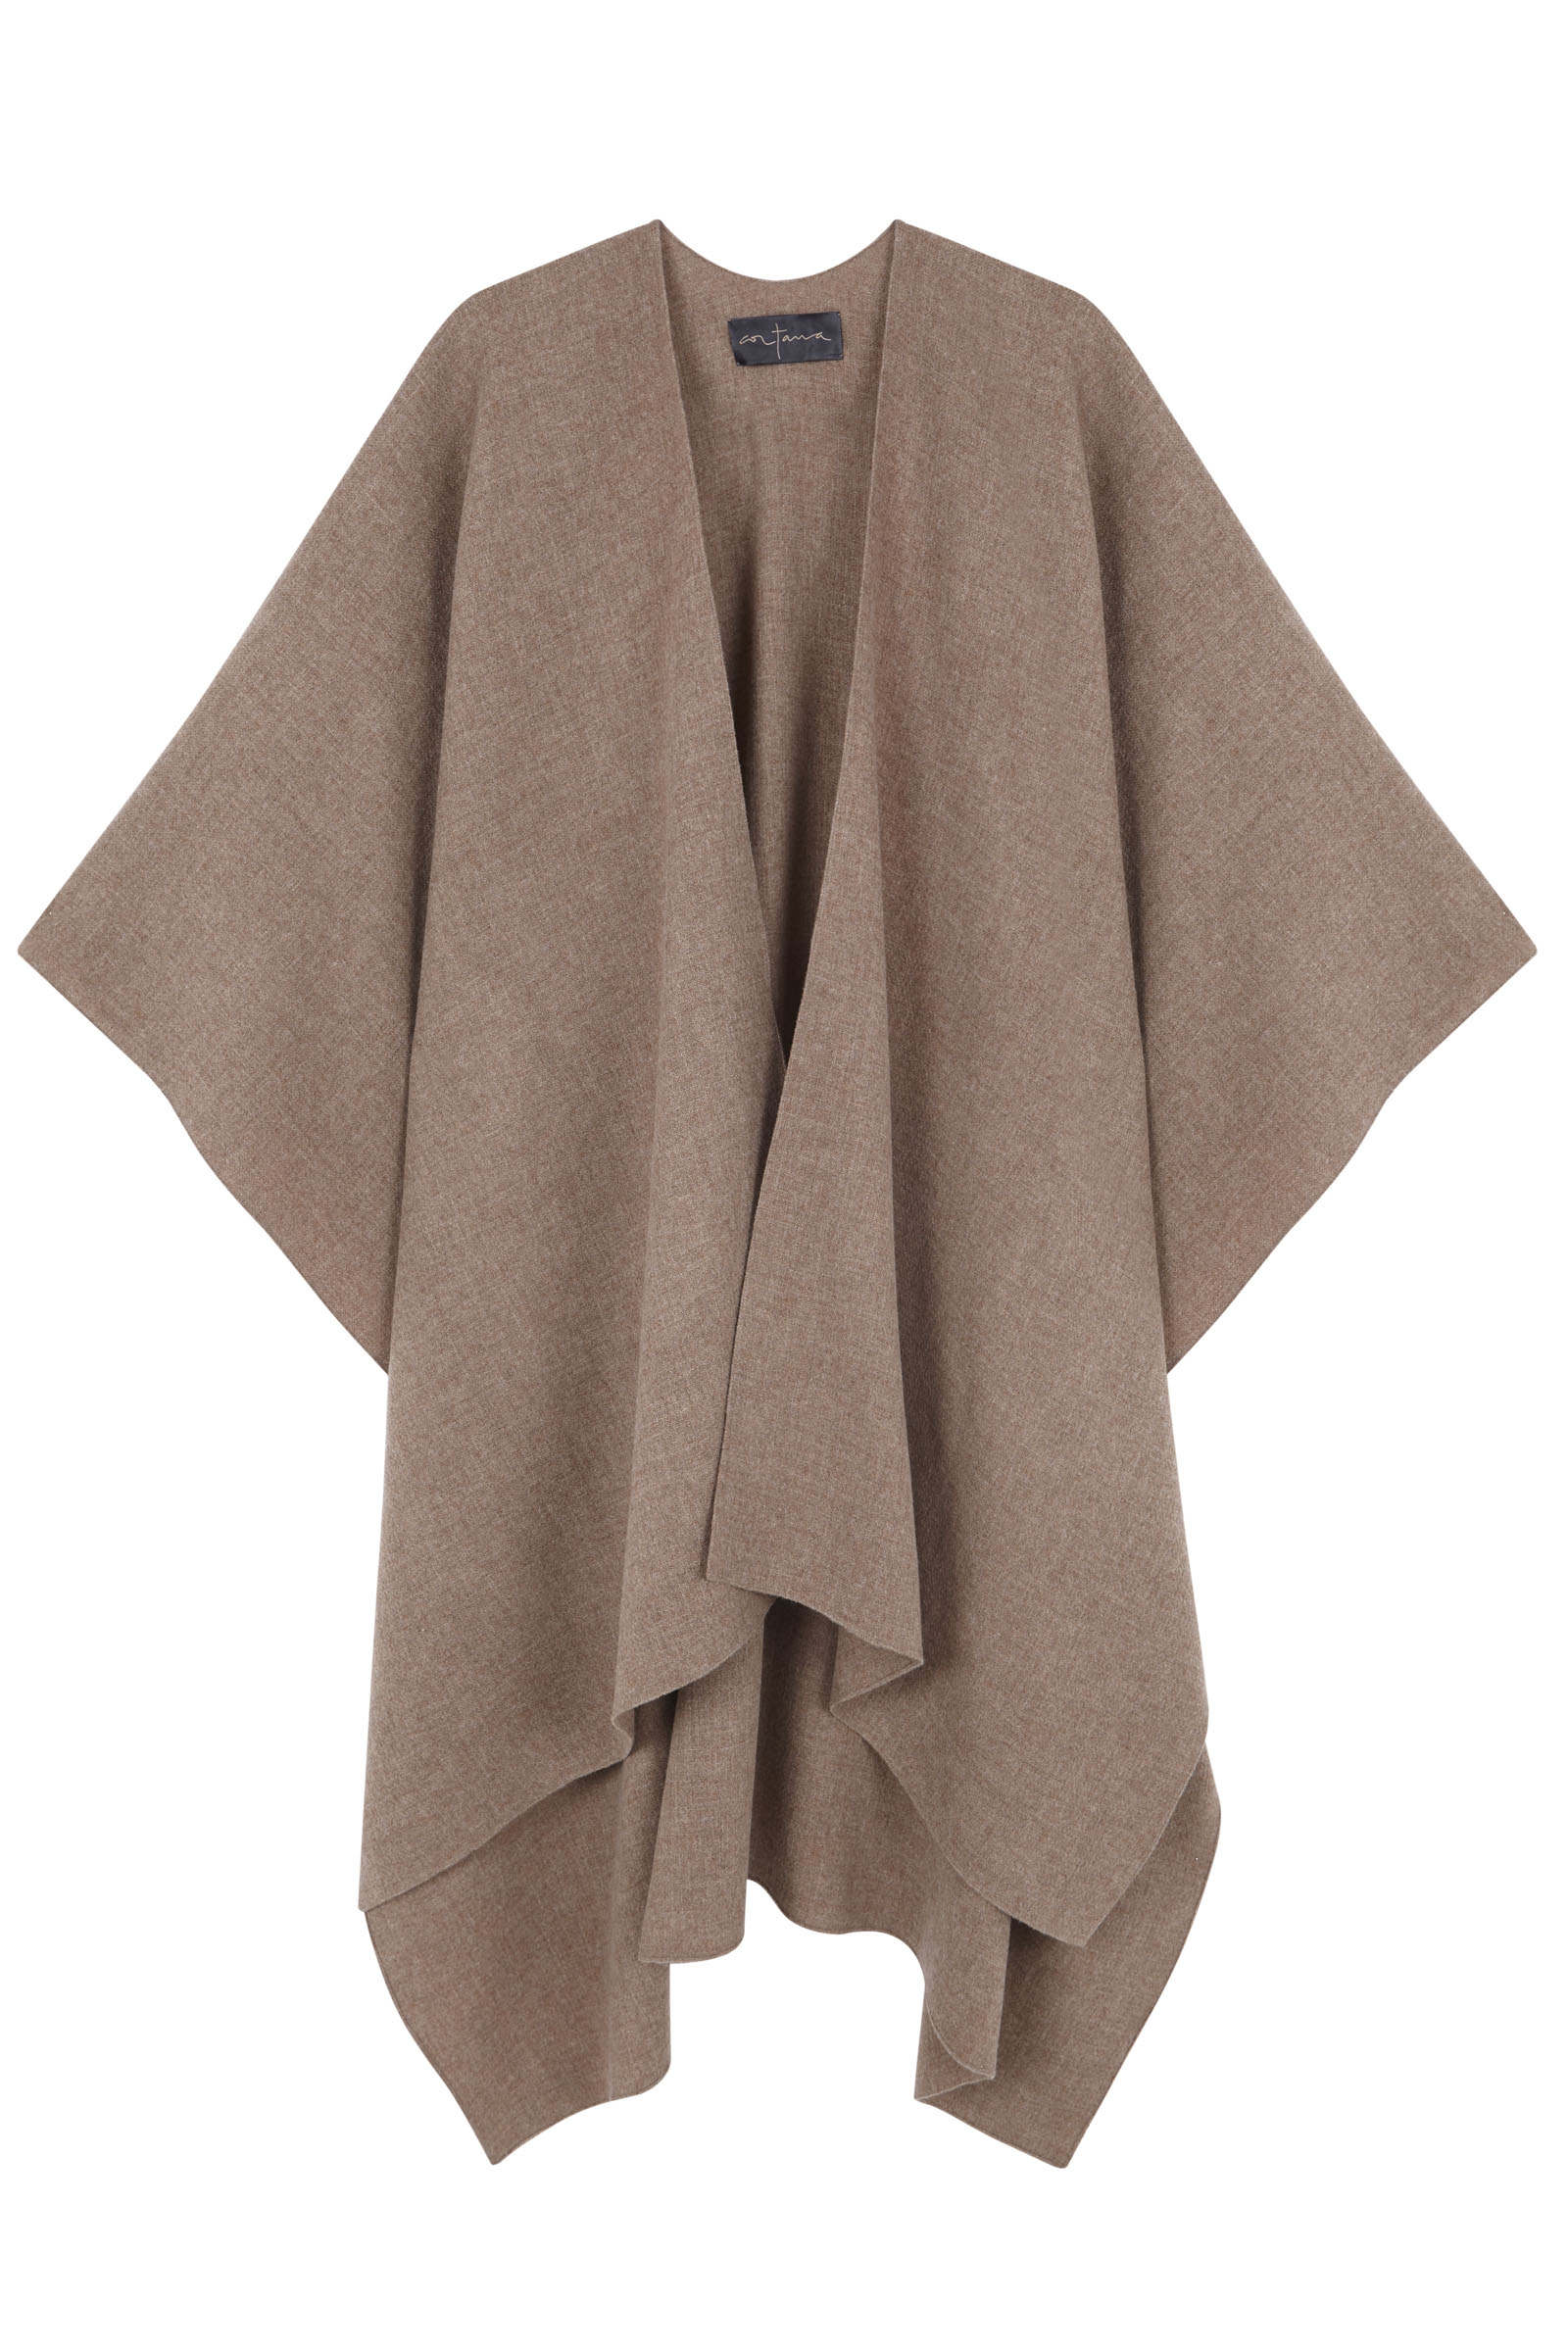 PONCHO, IN CAPPUCCINO VIRGIN WOOL - Cortana Moda